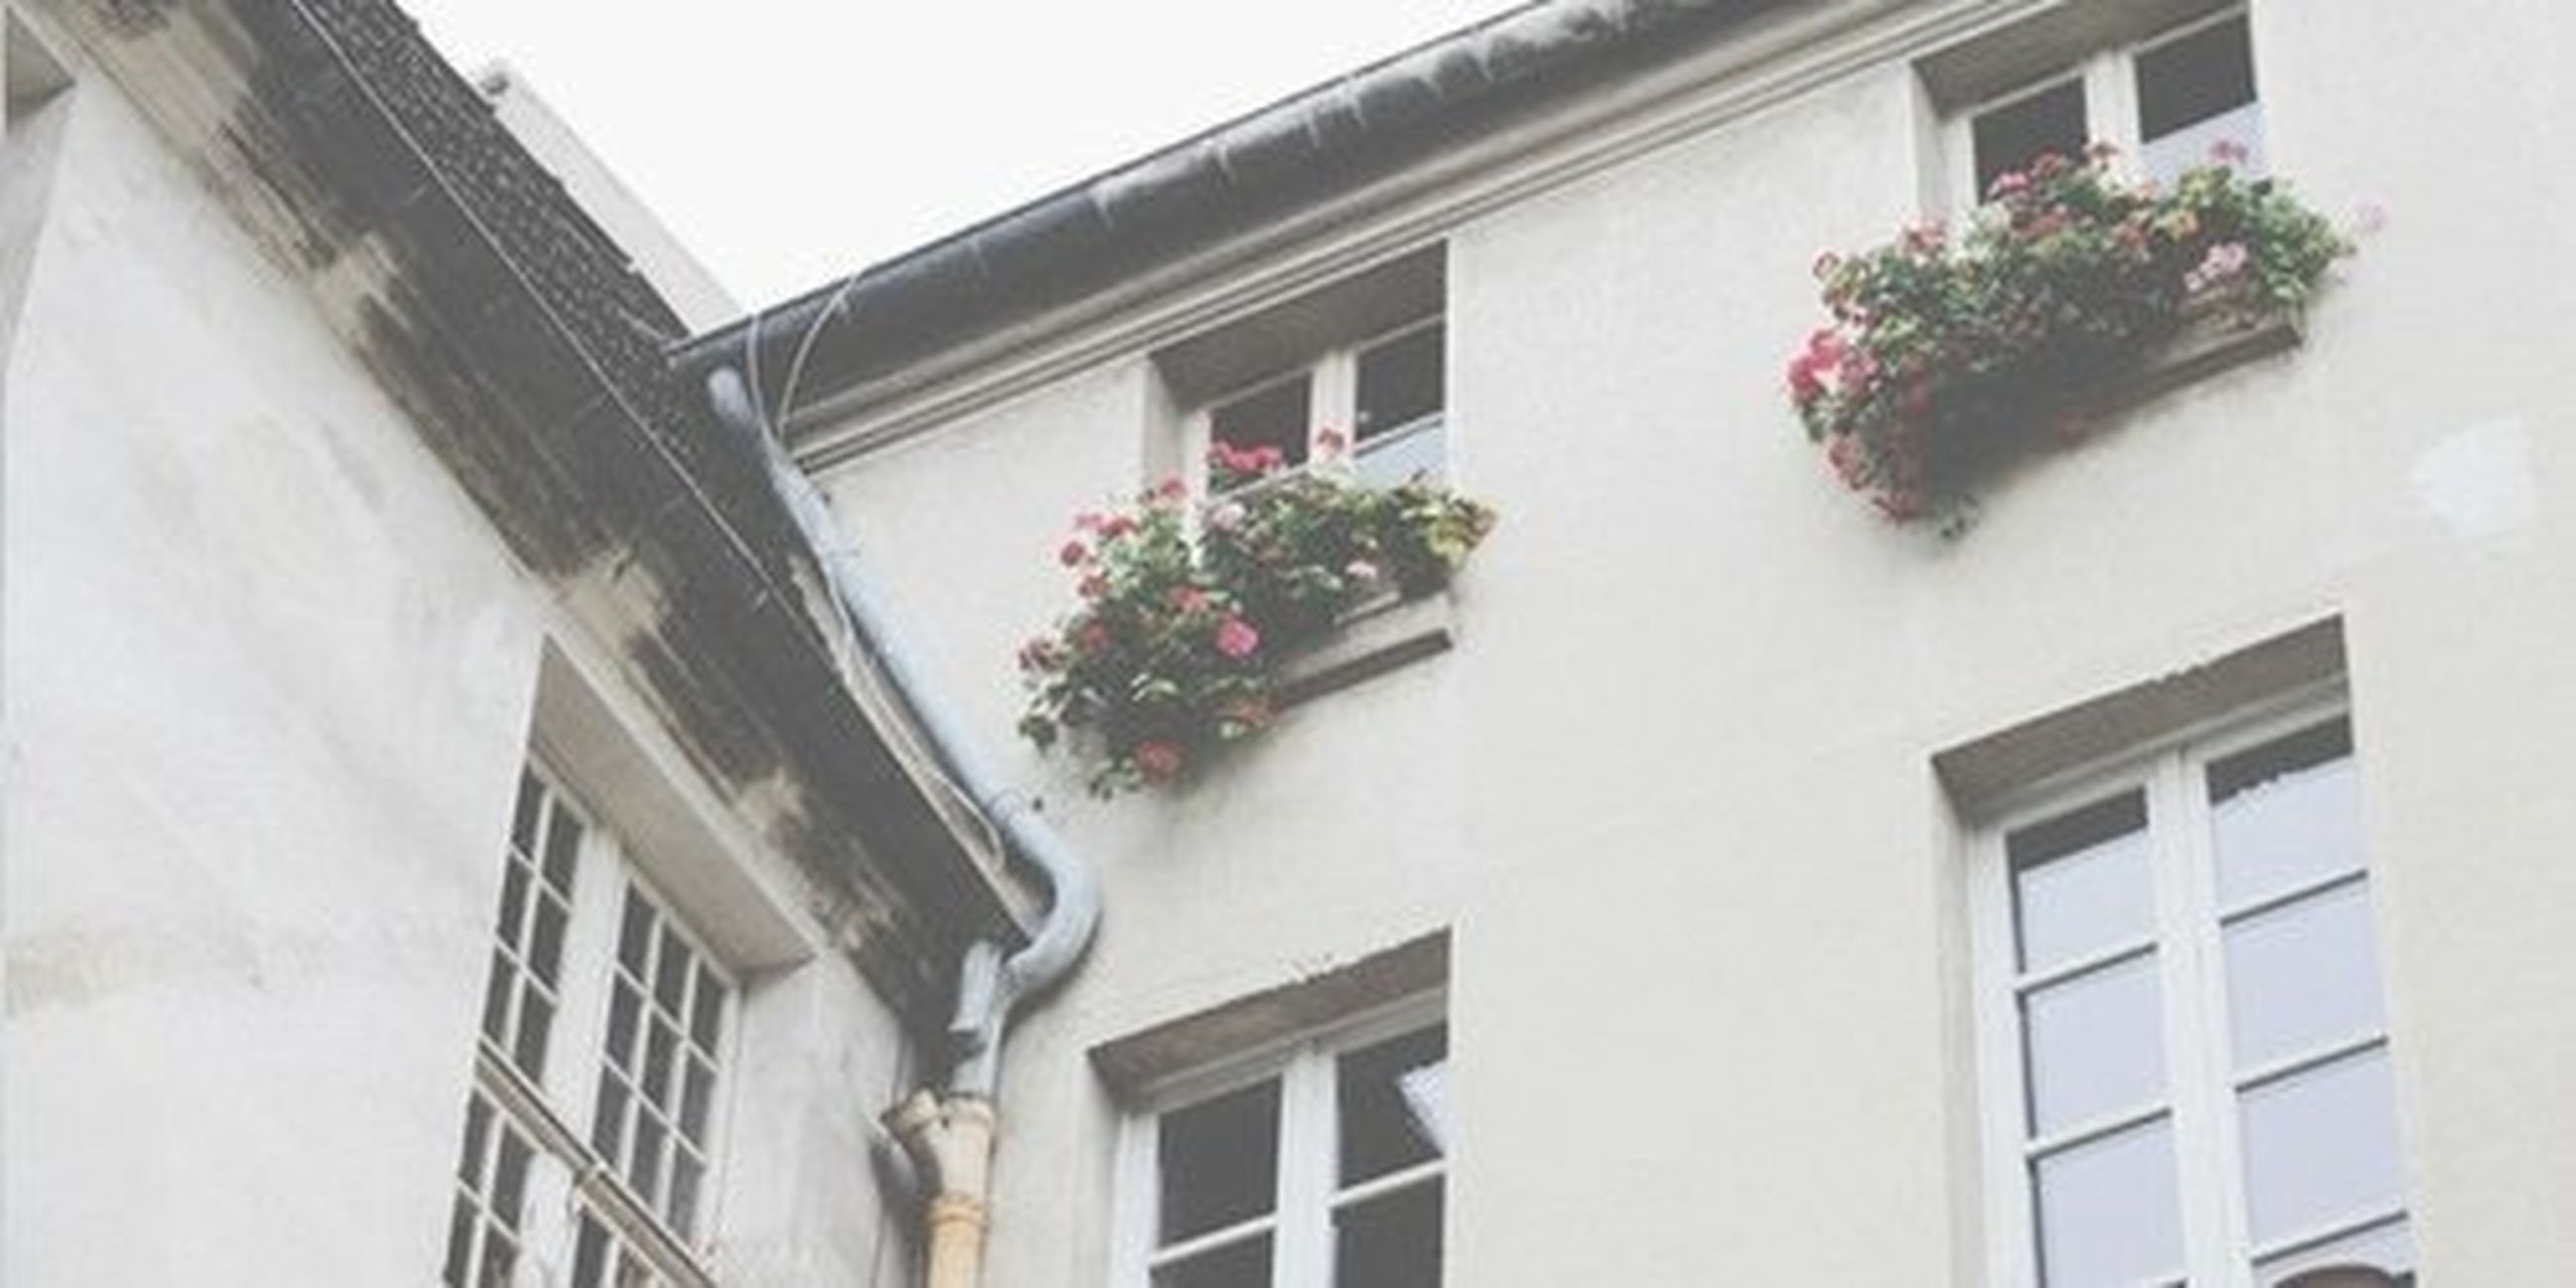 architecture, building exterior, built structure, window, residential building, residential structure, house, growth, low angle view, flower, potted plant, balcony, plant, building, day, no people, outdoors, nature, sunlight, leaf